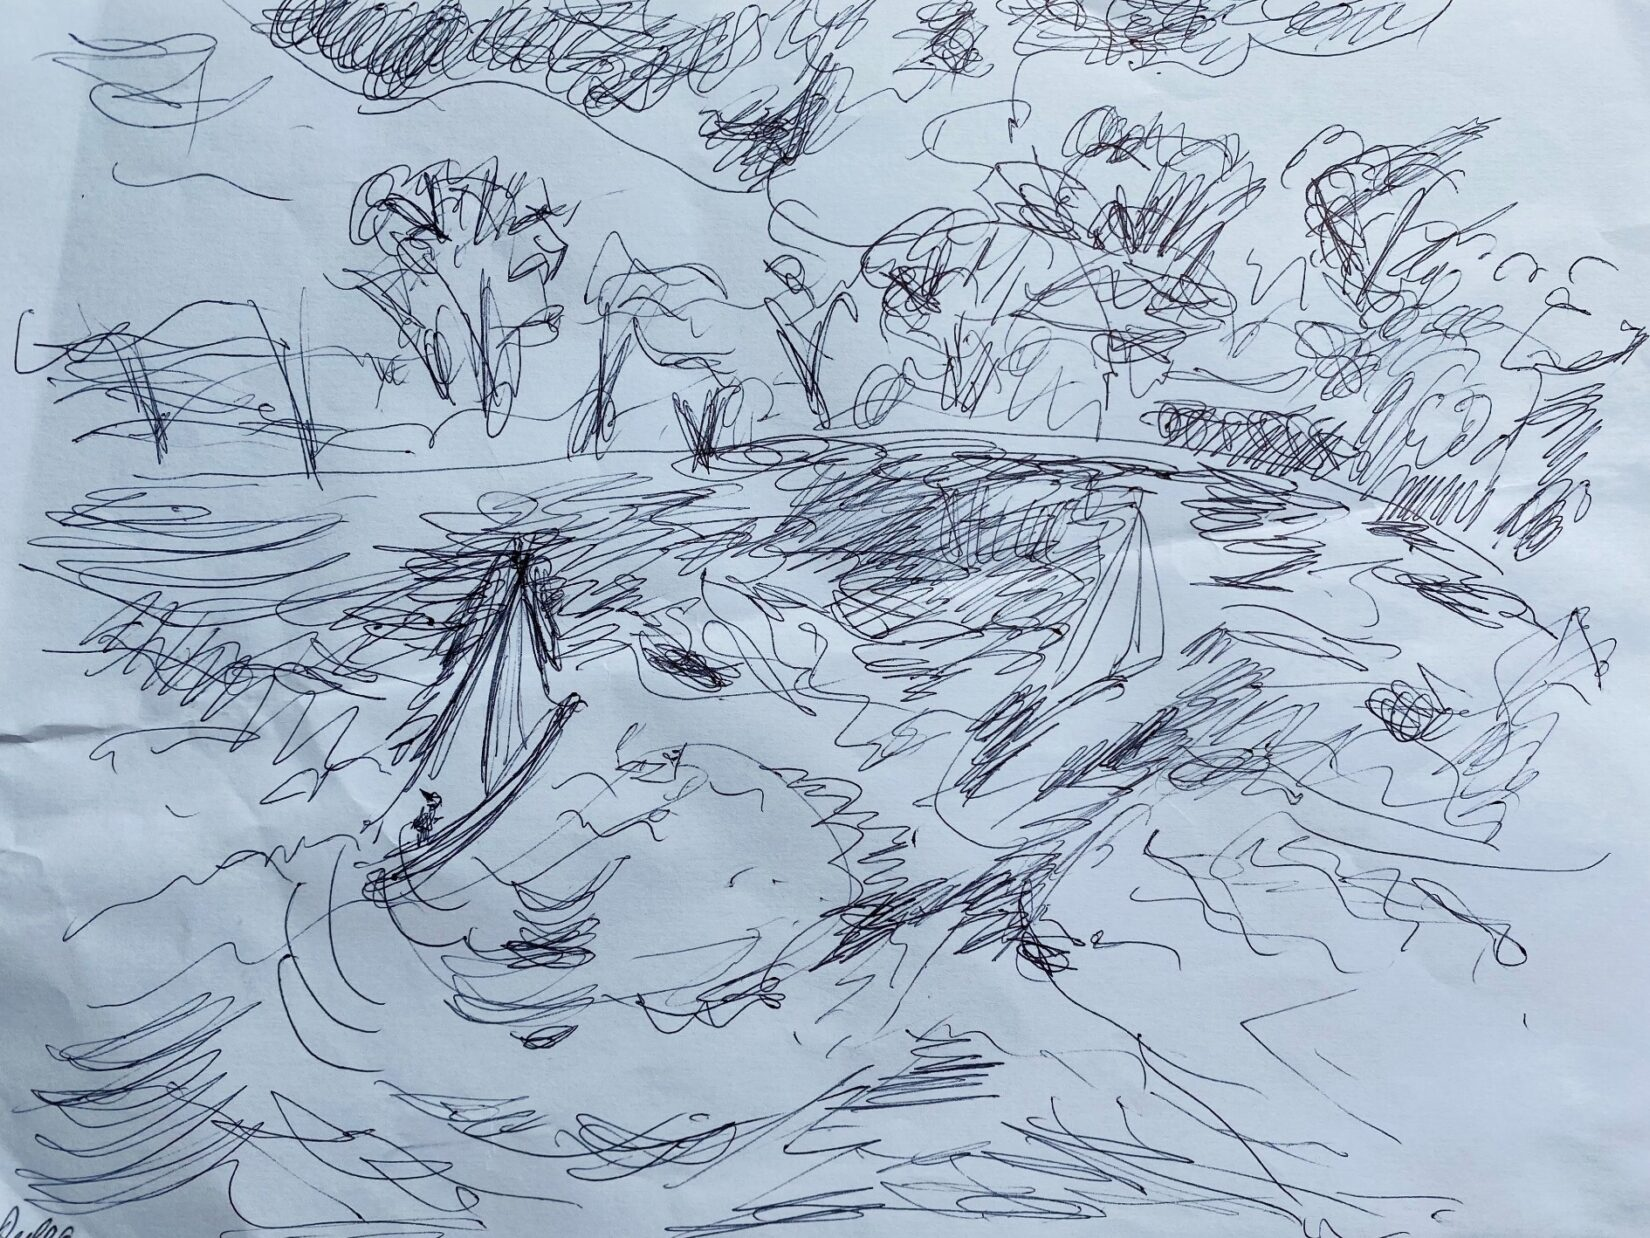 A loose rendering of Conservatory Water and the model boats that ply its surface.